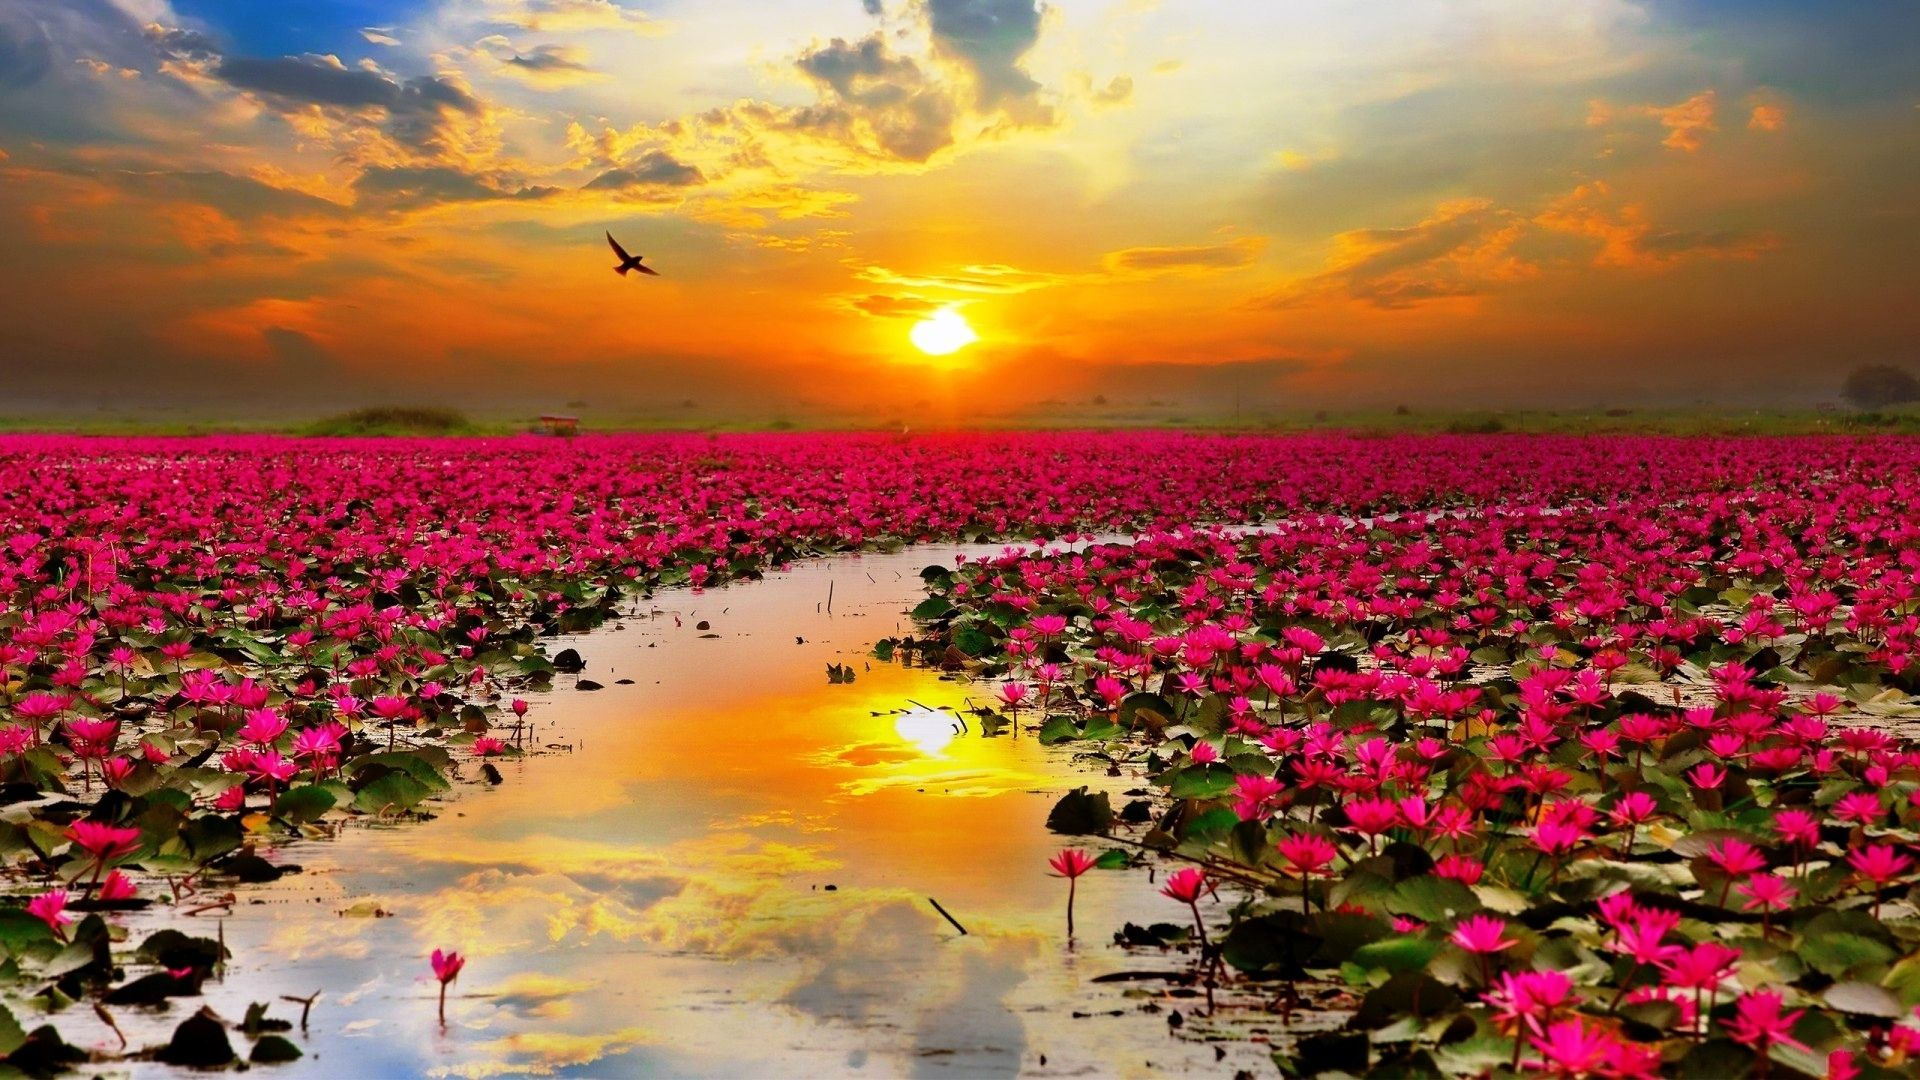 Sunset Over Lake Of Lotuses Pictures